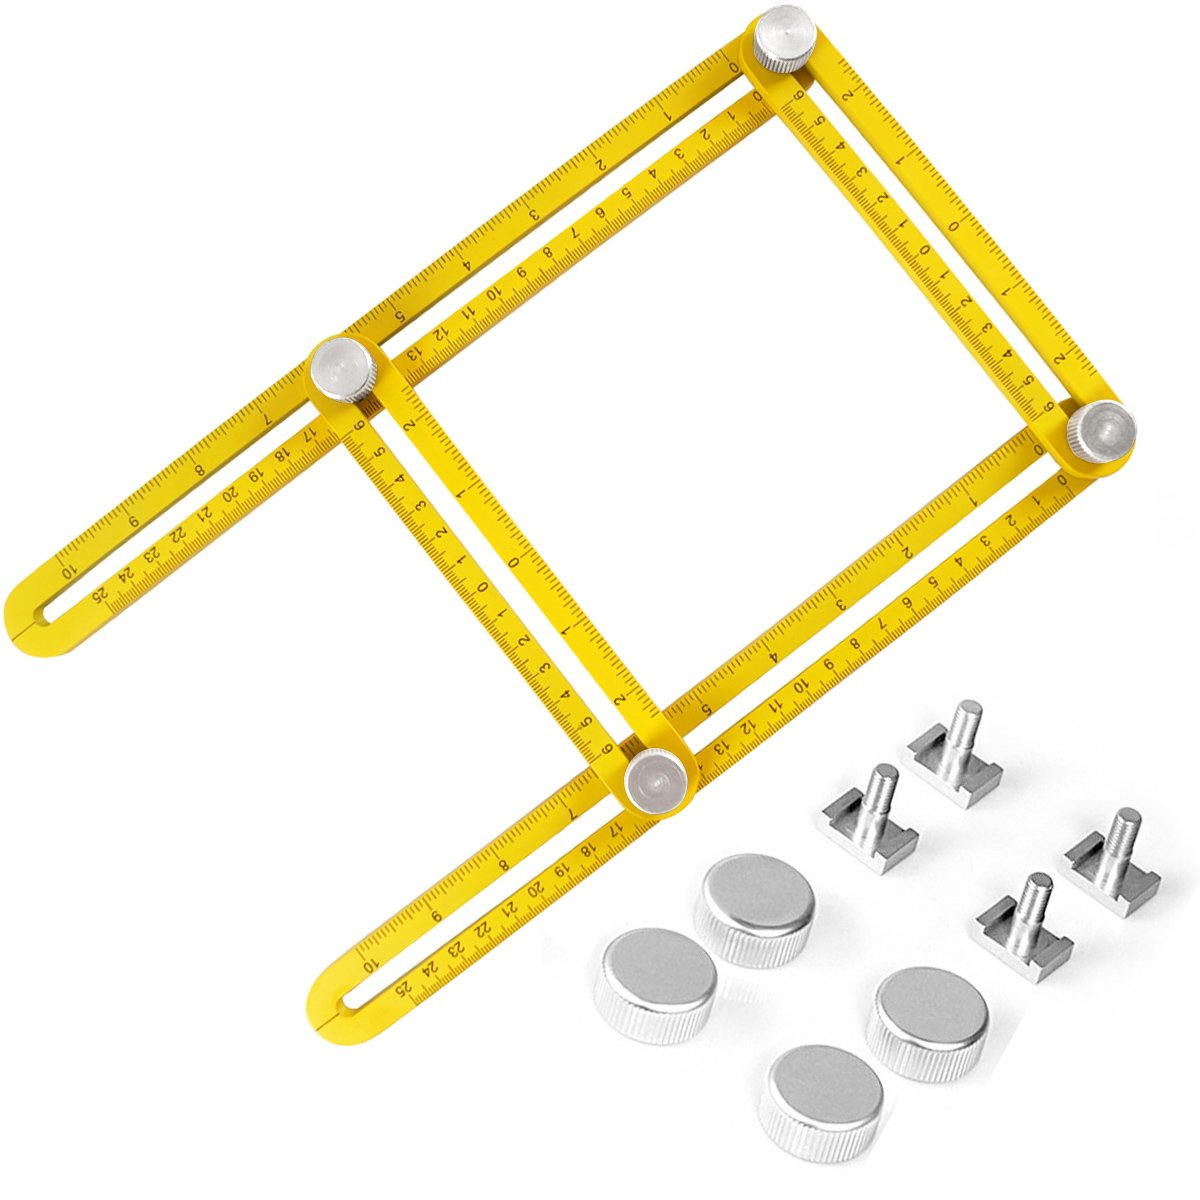 Upgraded Angleizer Template Tool, Haobuy Multi-Angle Measuring Ruler Measures All Angles and Forms for Builders, Handymen, Craftsmen, Weekend Warriors, DIY-ers and Engineers - Yellow